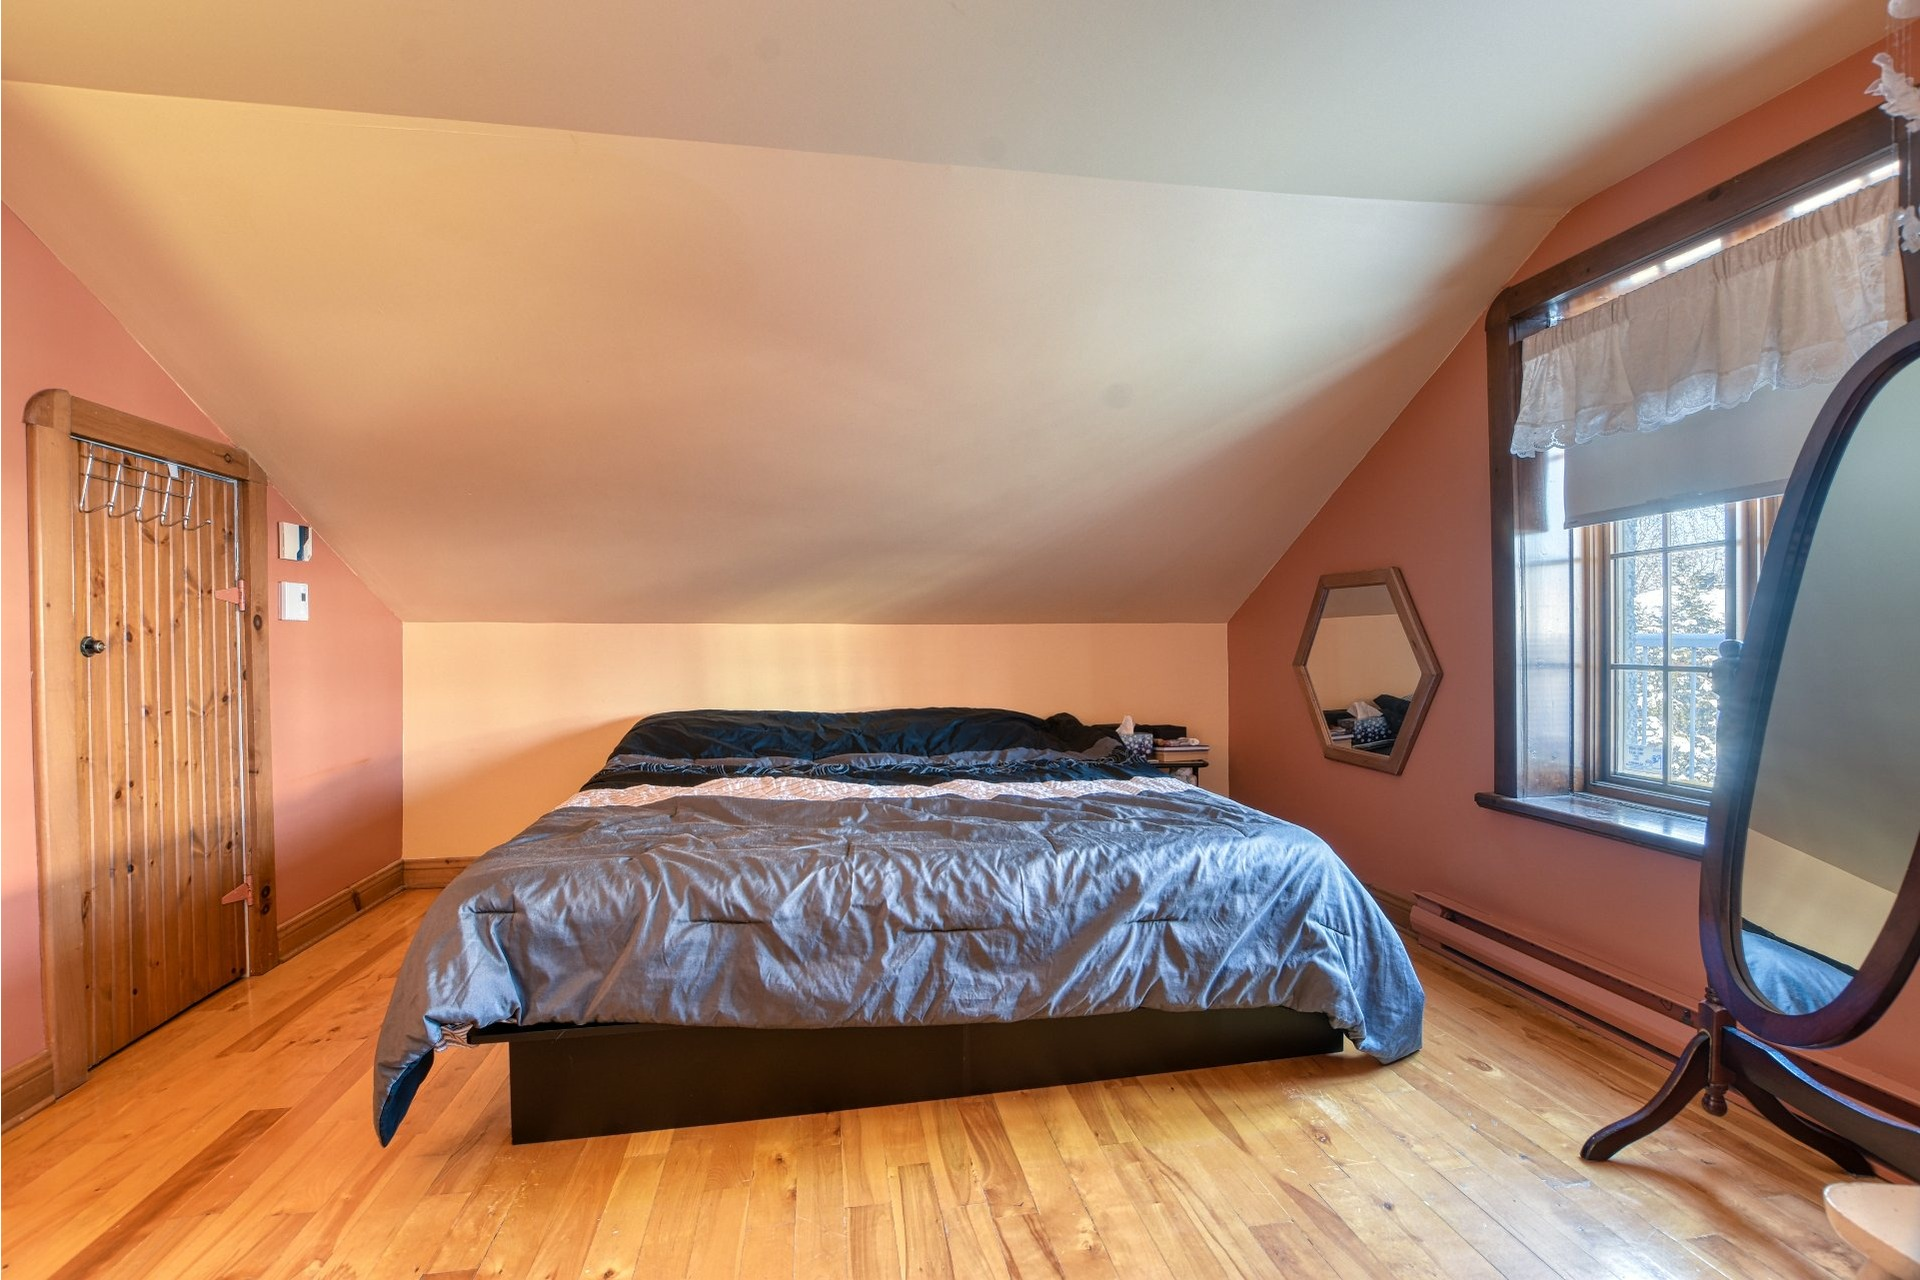 image 12 - House For sale Saint-Laurent Montréal  - 10 rooms